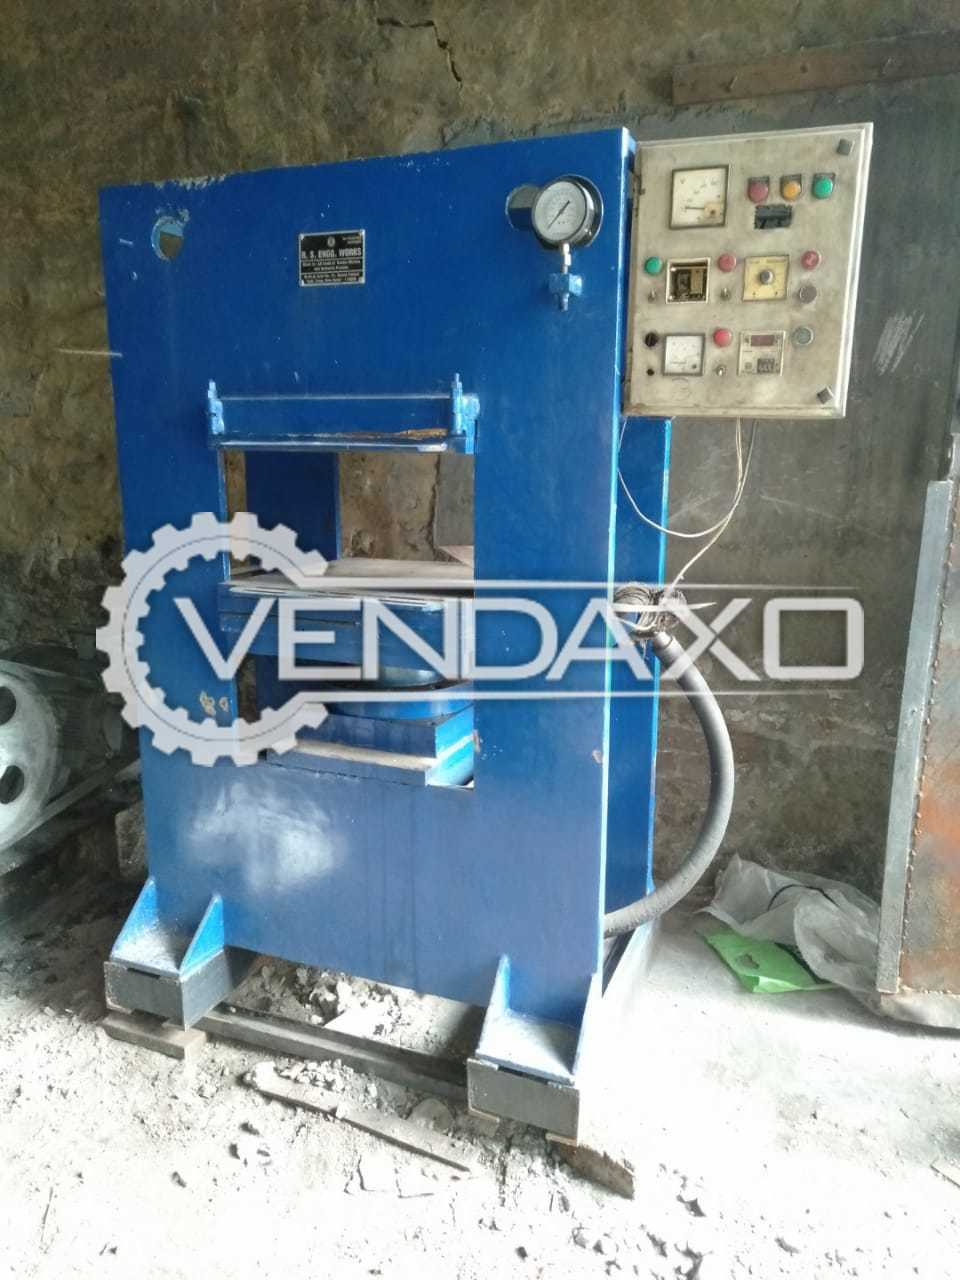 Rubber Hydraulic Press Machine - 24 X 24 Inch